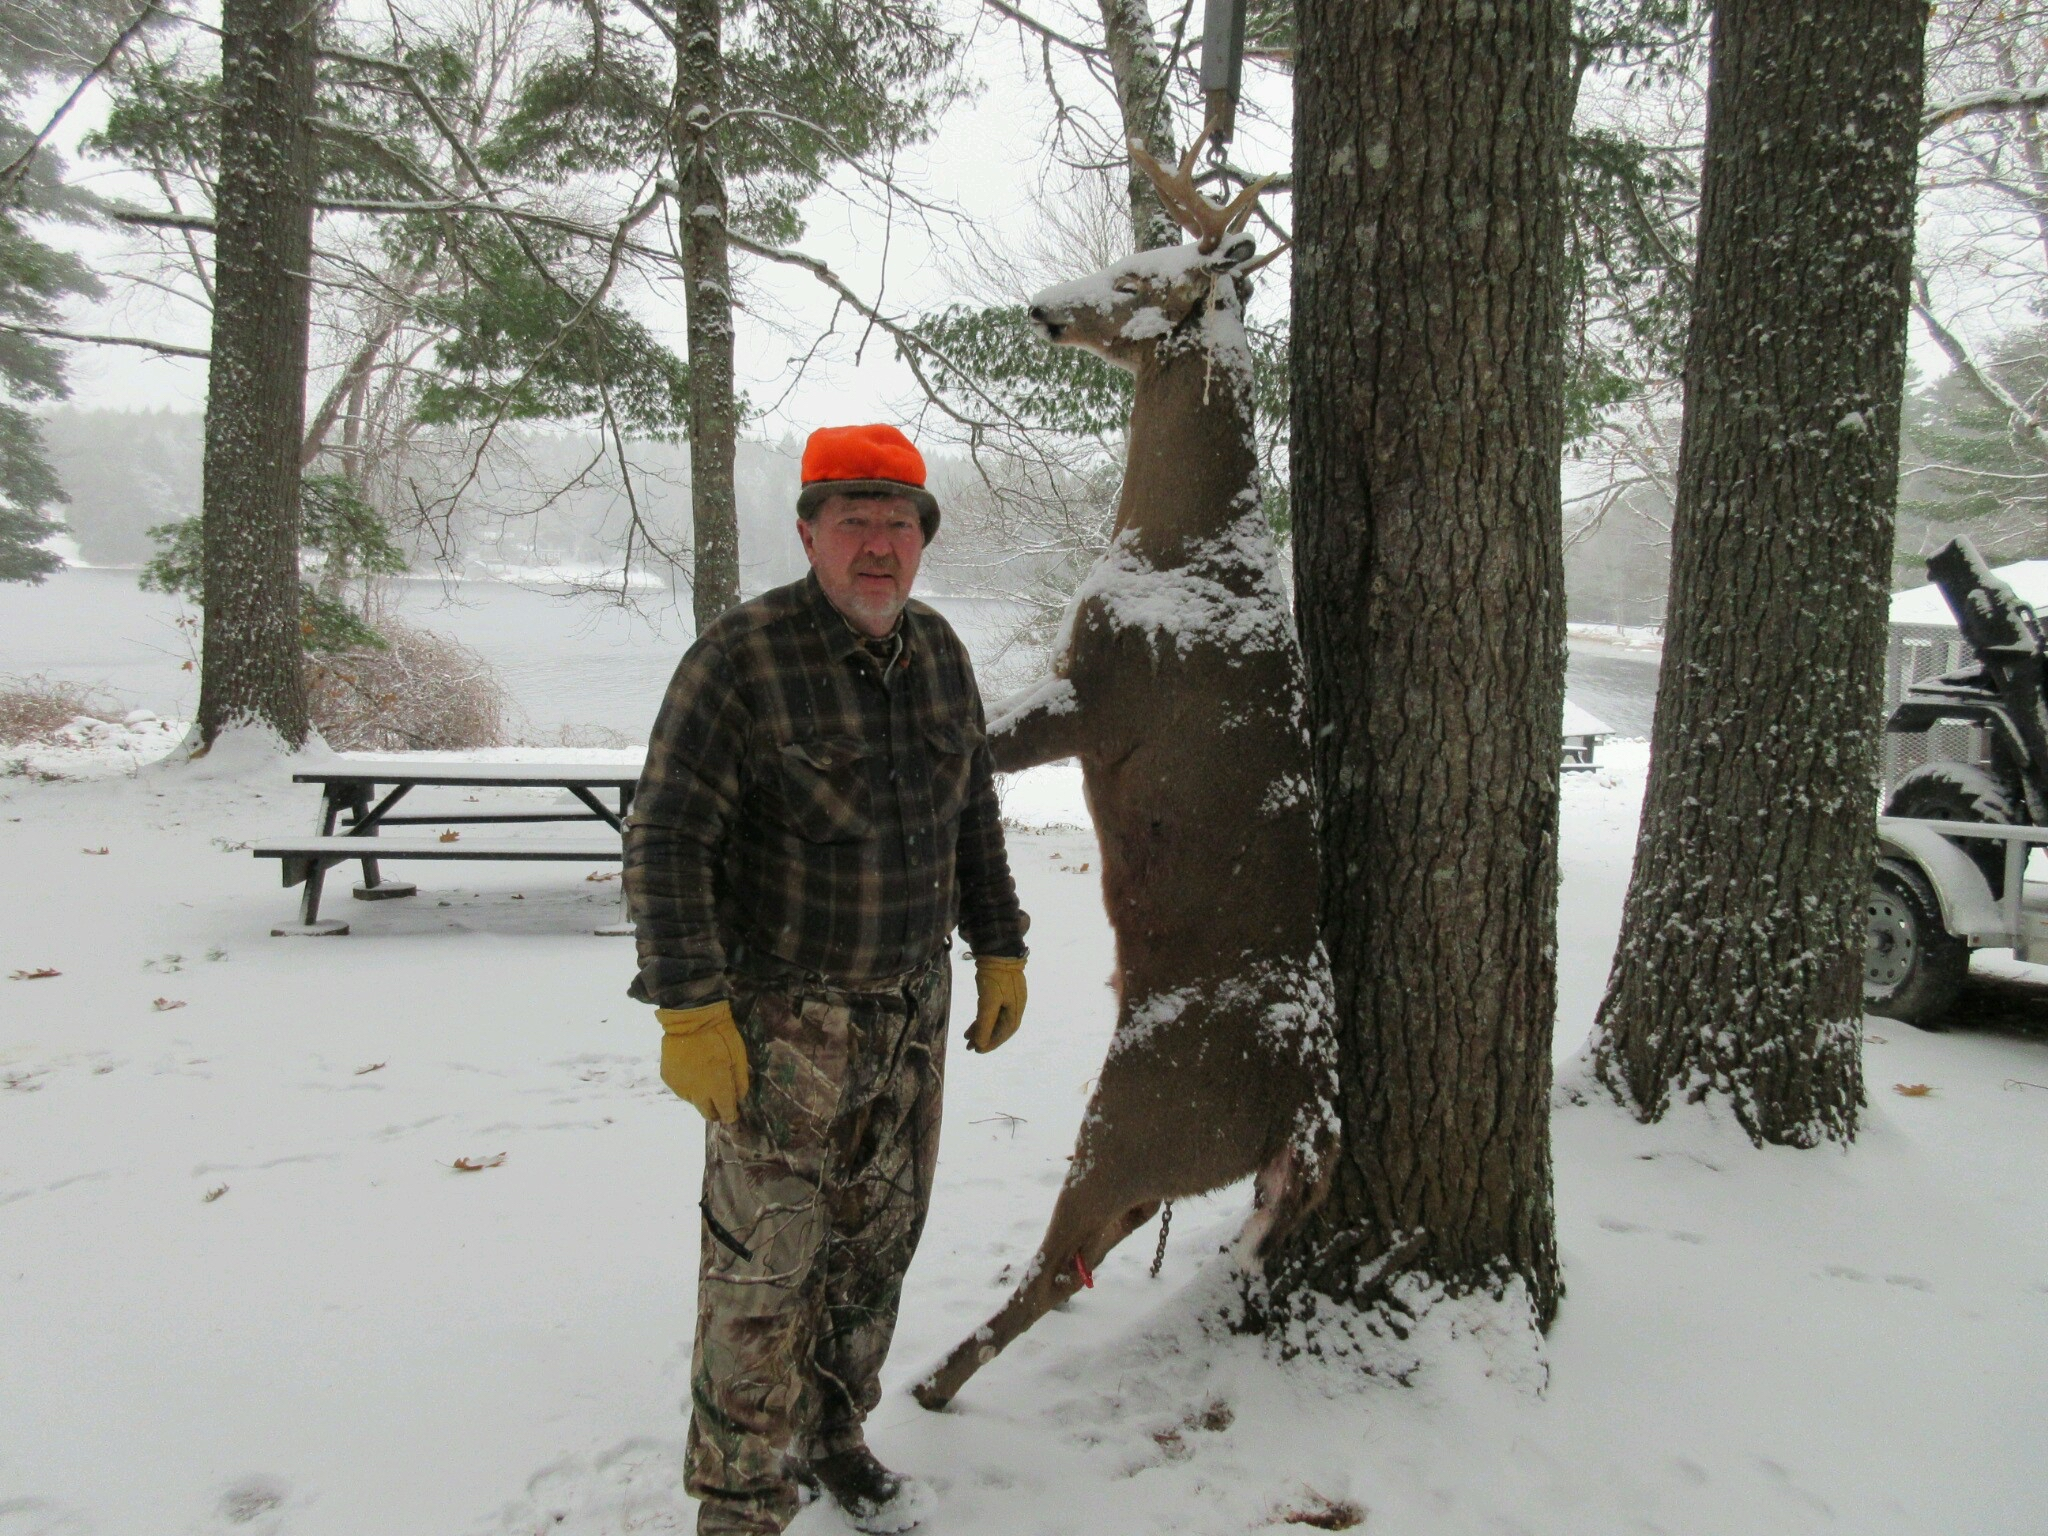 Man and deer